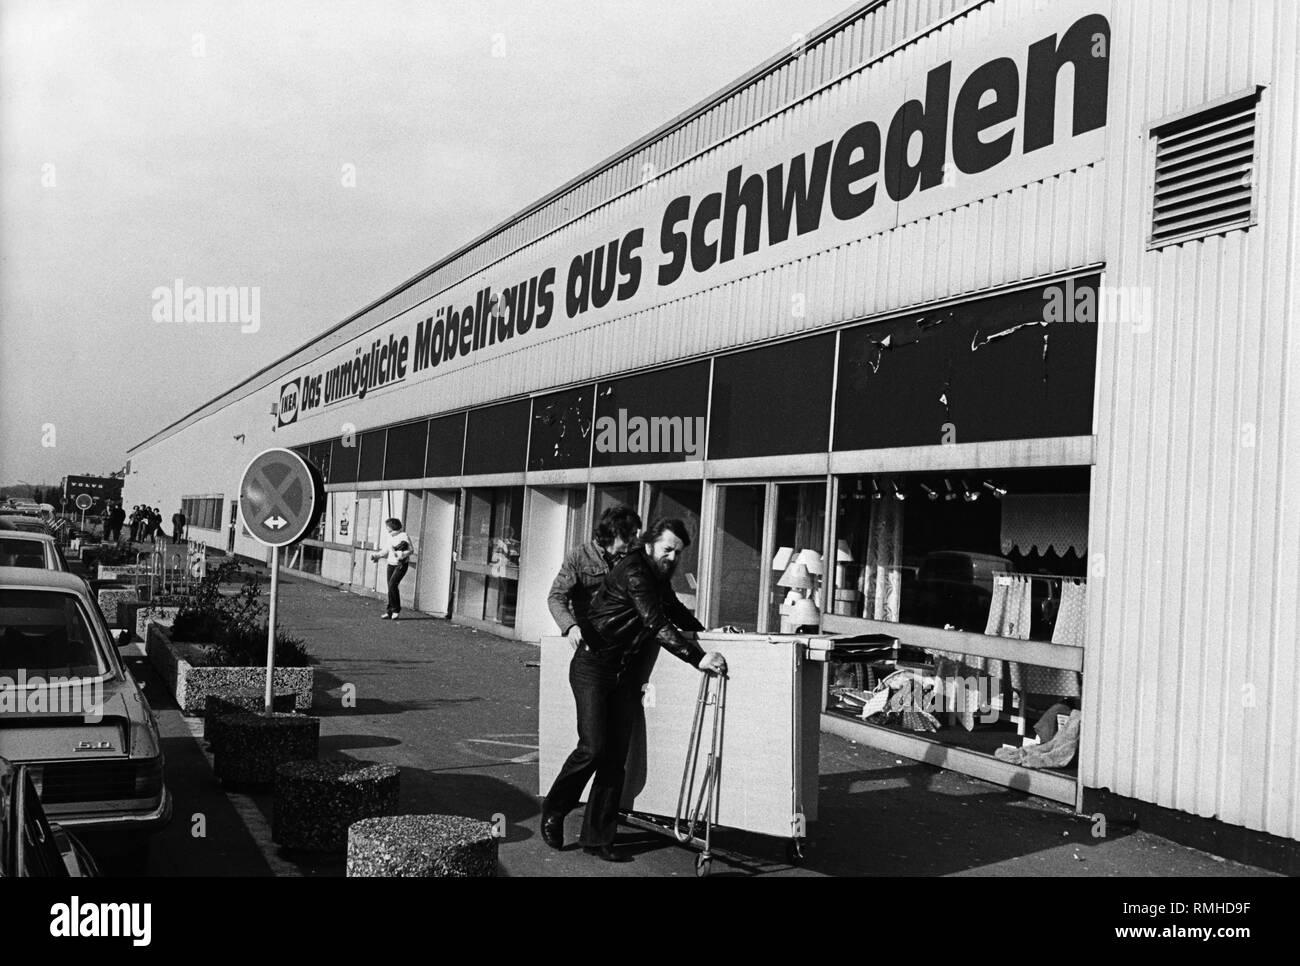 Subsidiary of the Swedish furniture chain Ikea in Dorsten in the northern Ruhr area. On the facade: 'Ikea - The impossible furniture store from Sweden'. - Stock Image